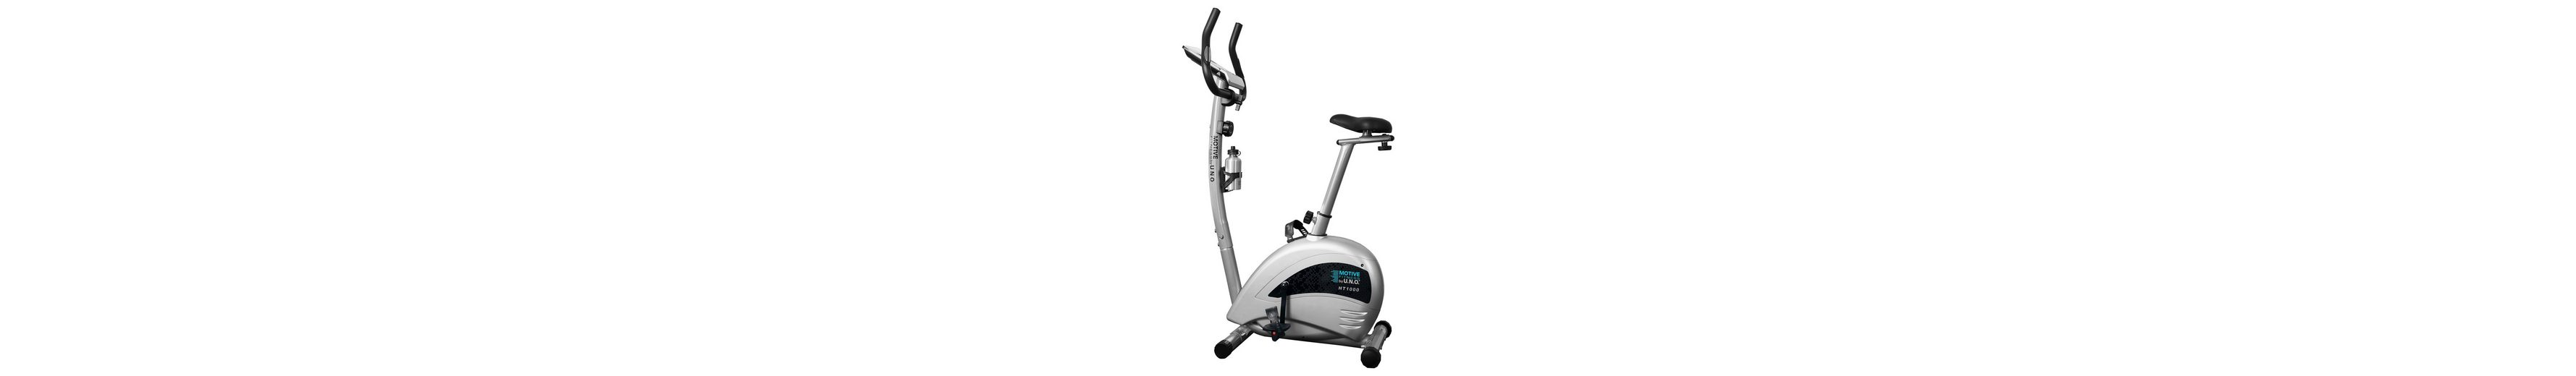 Heimtrainer, »HT 1000«, MOTIVE by U.N.O. Fitness